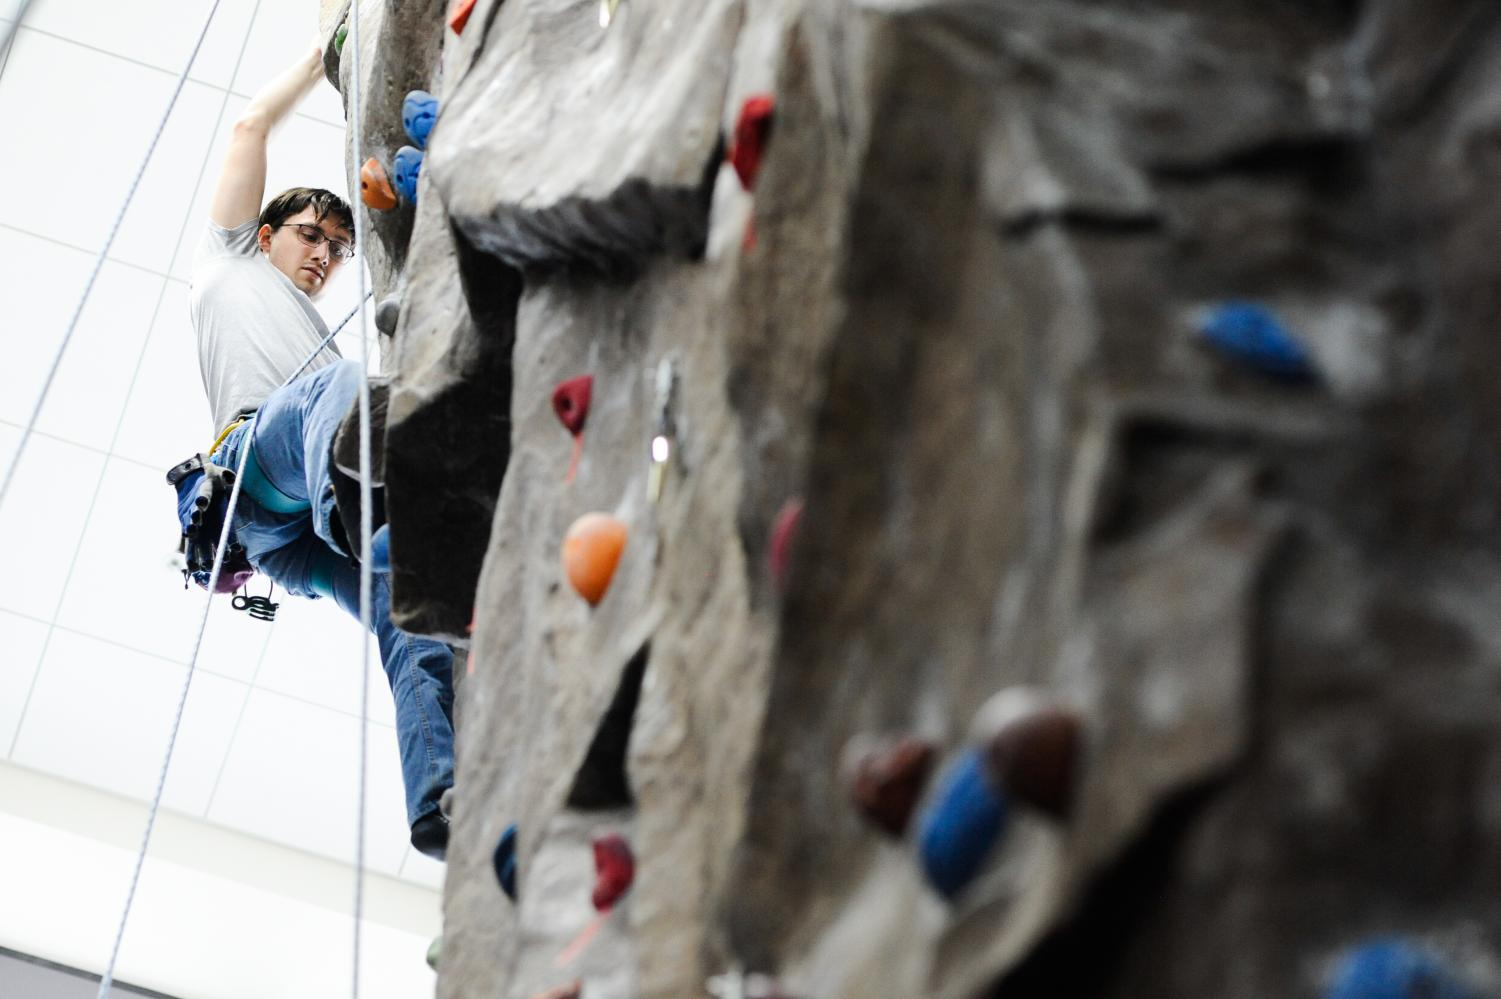 Martin Mattes scales the rock wall in the SURC Recreation Center for the Vertical Challenge.